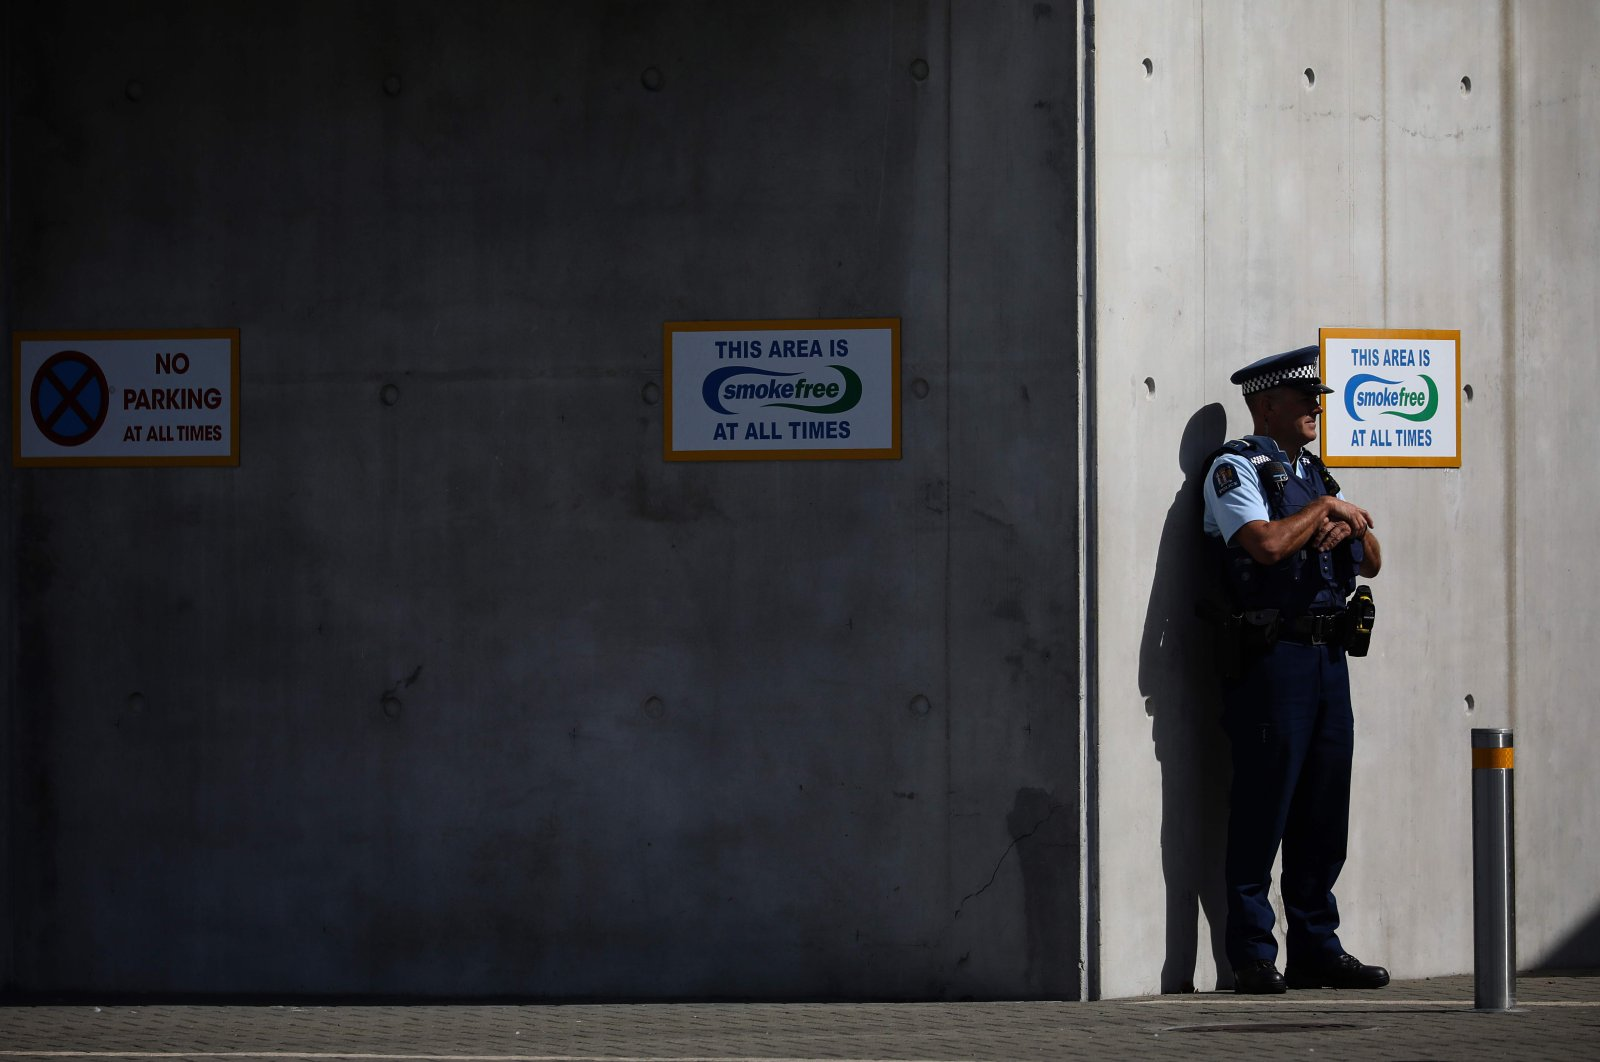 A police officer stands guard duringcongregational Friday prayers at Horncastle Arena, Christchurch, March 13, 2020. (AFP Photo)